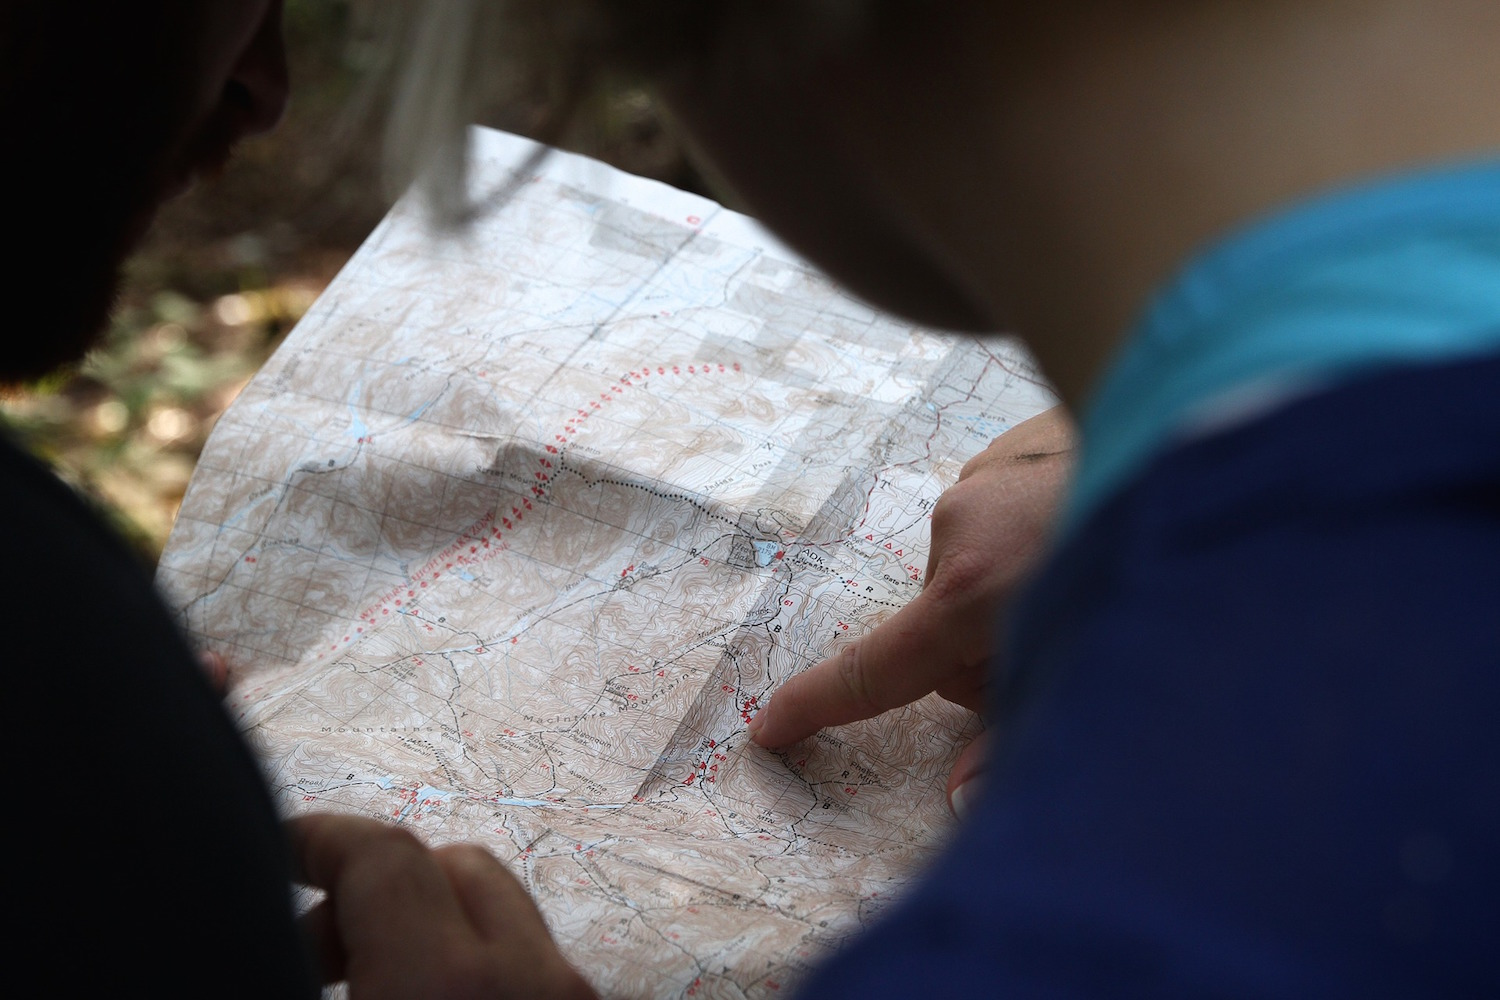 Create your own trail from a topographical map.